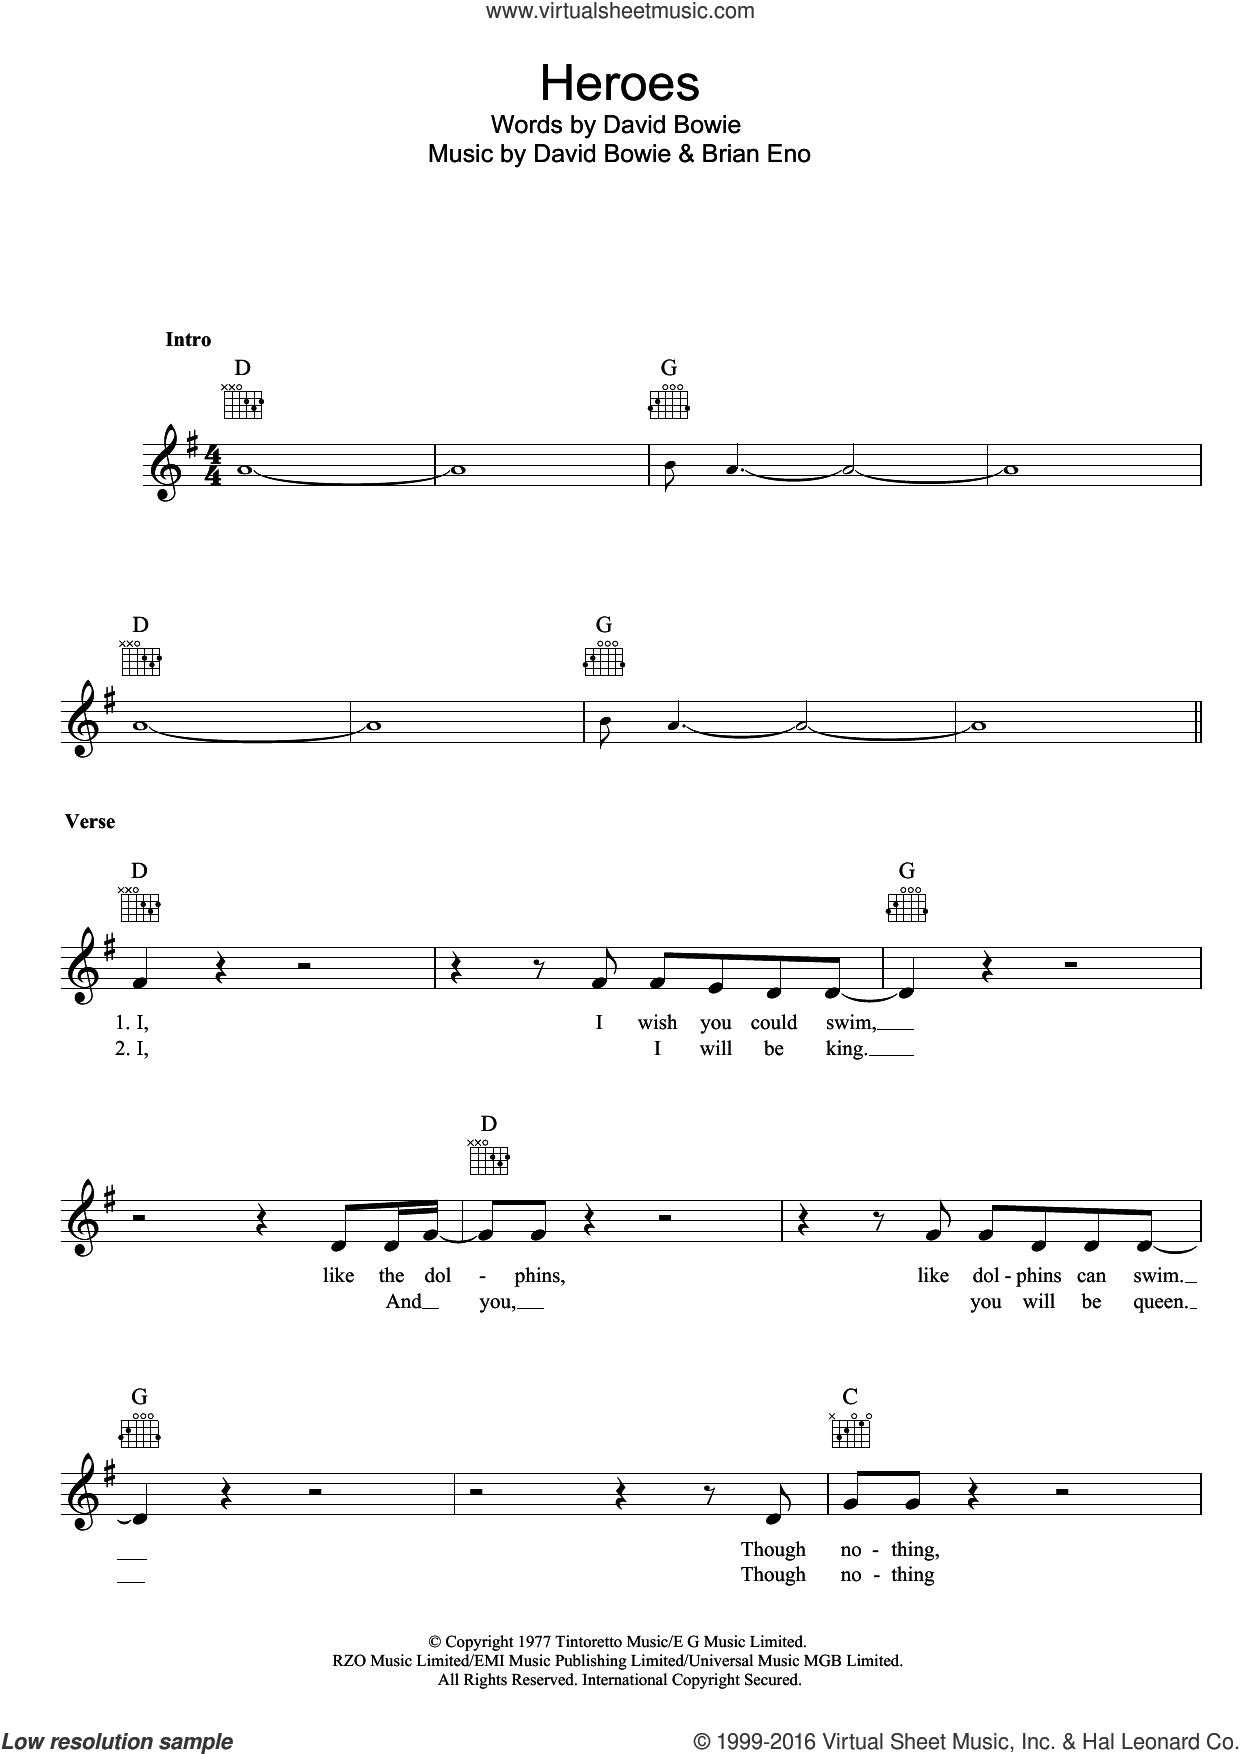 Heroes sheet music for voice and other instruments (fake book) by David Bowie and Brian Eno, intermediate skill level